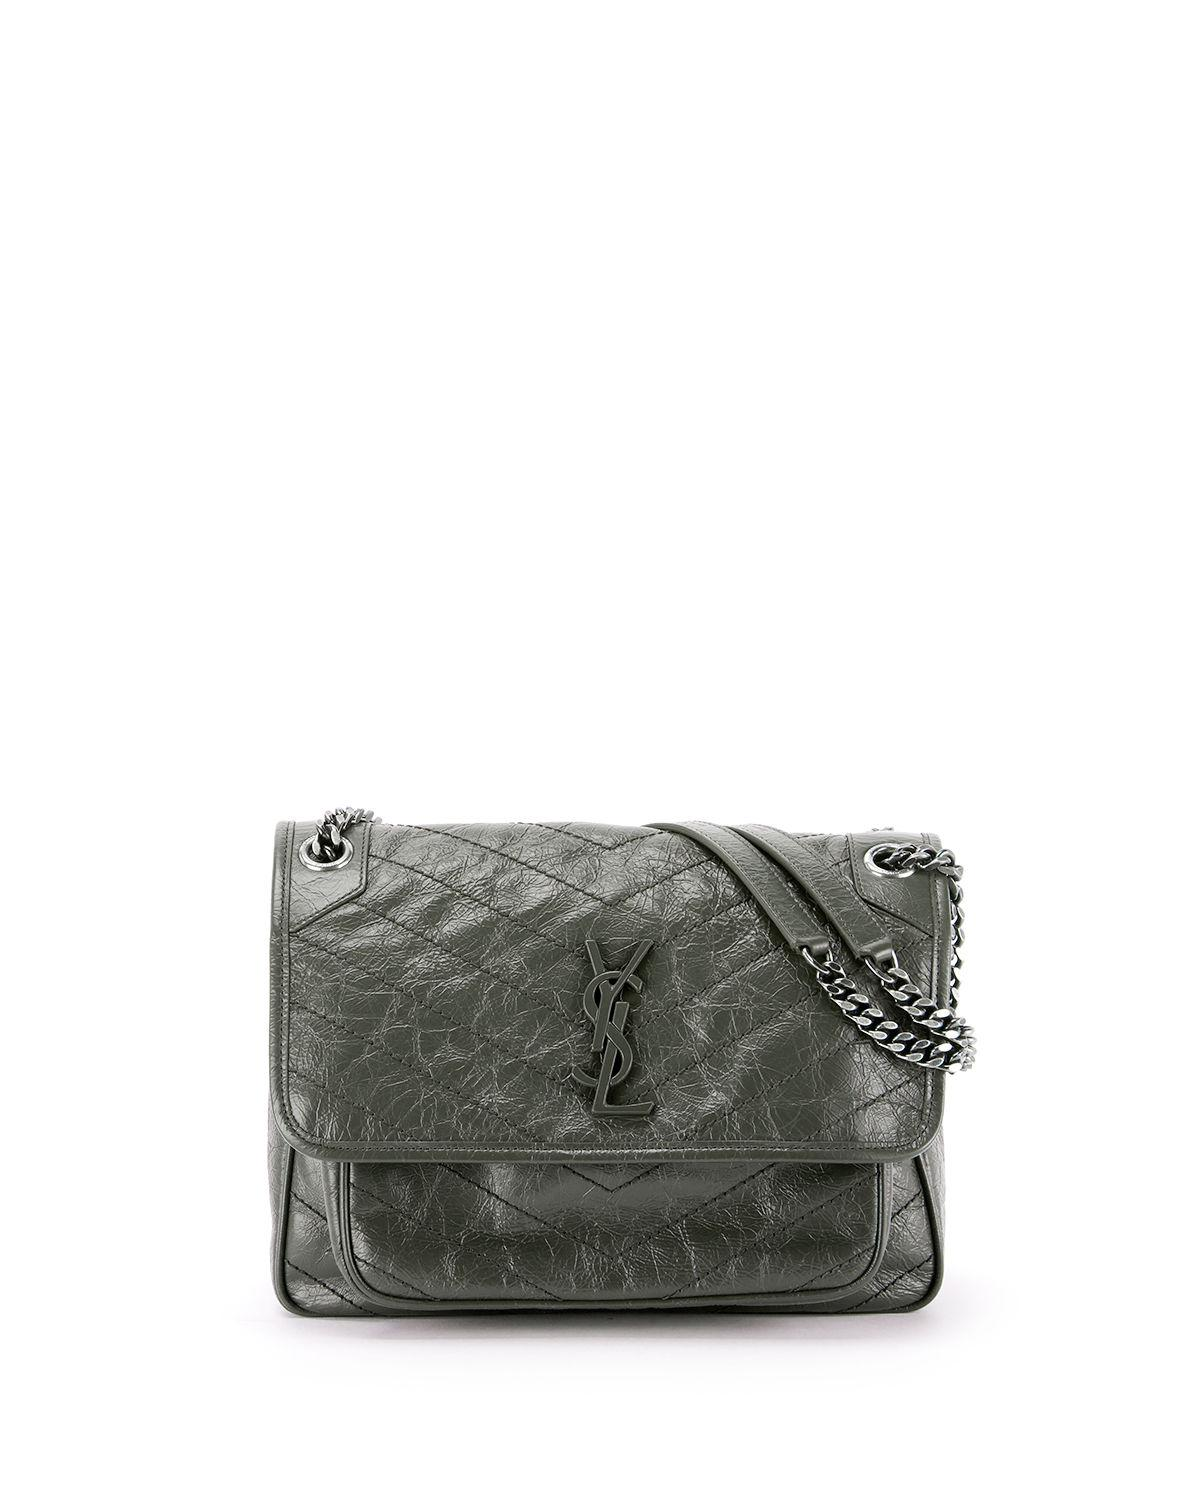 7938920cfb Saint Laurent Niki Medium Monogram Ysl Shiny Waxy Quilted Shoulder Bag In  Dark Green